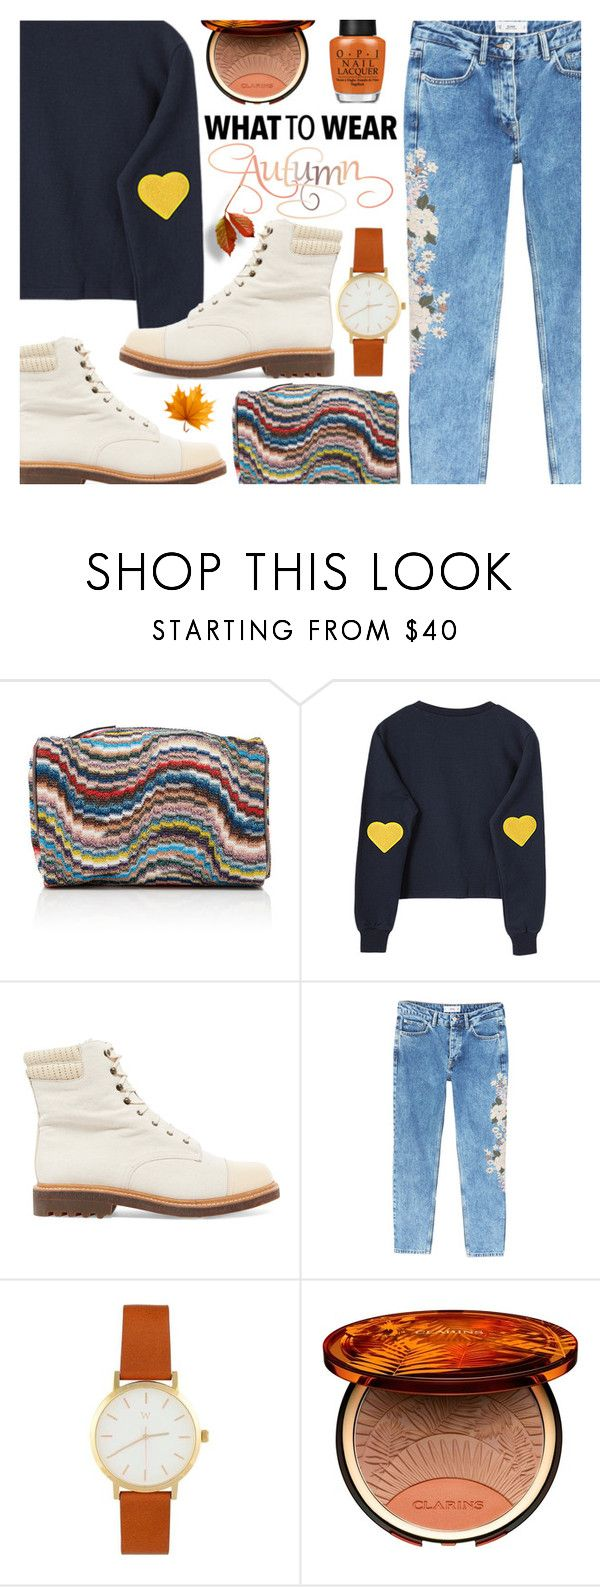 """🍂Autumn"" by ana3blue on Polyvore featuring Missoni, Robert Clergerie, MANGO, Clarins and OPI"